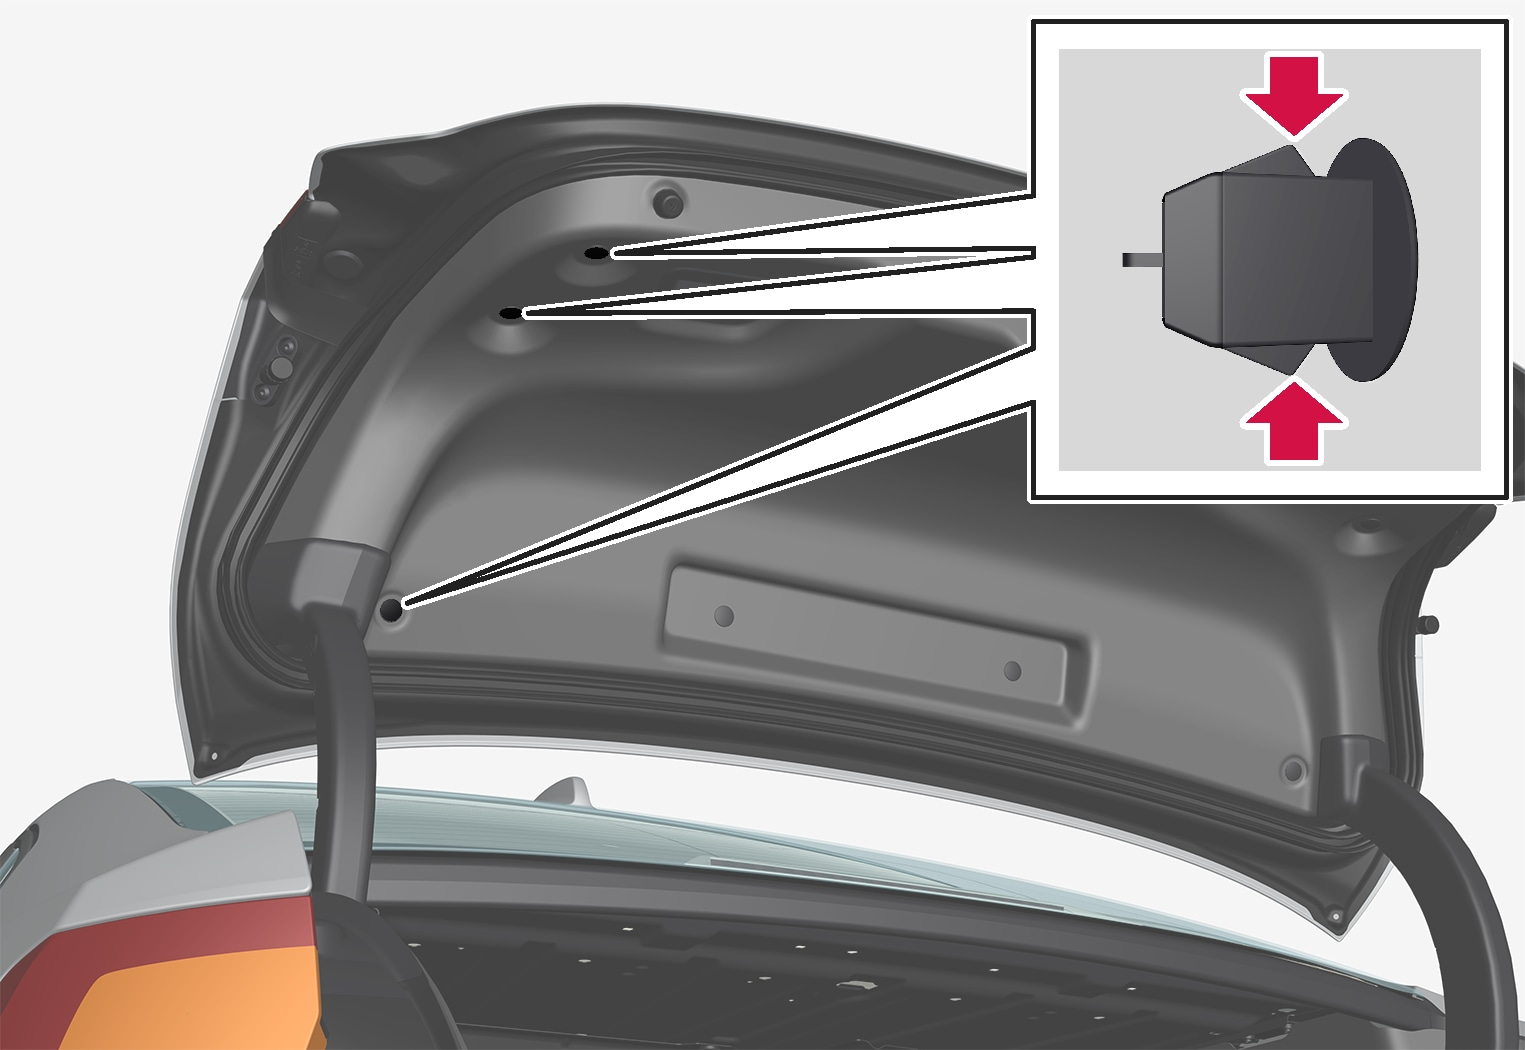 P5-1617-S90 Trunk lid panel clips removal